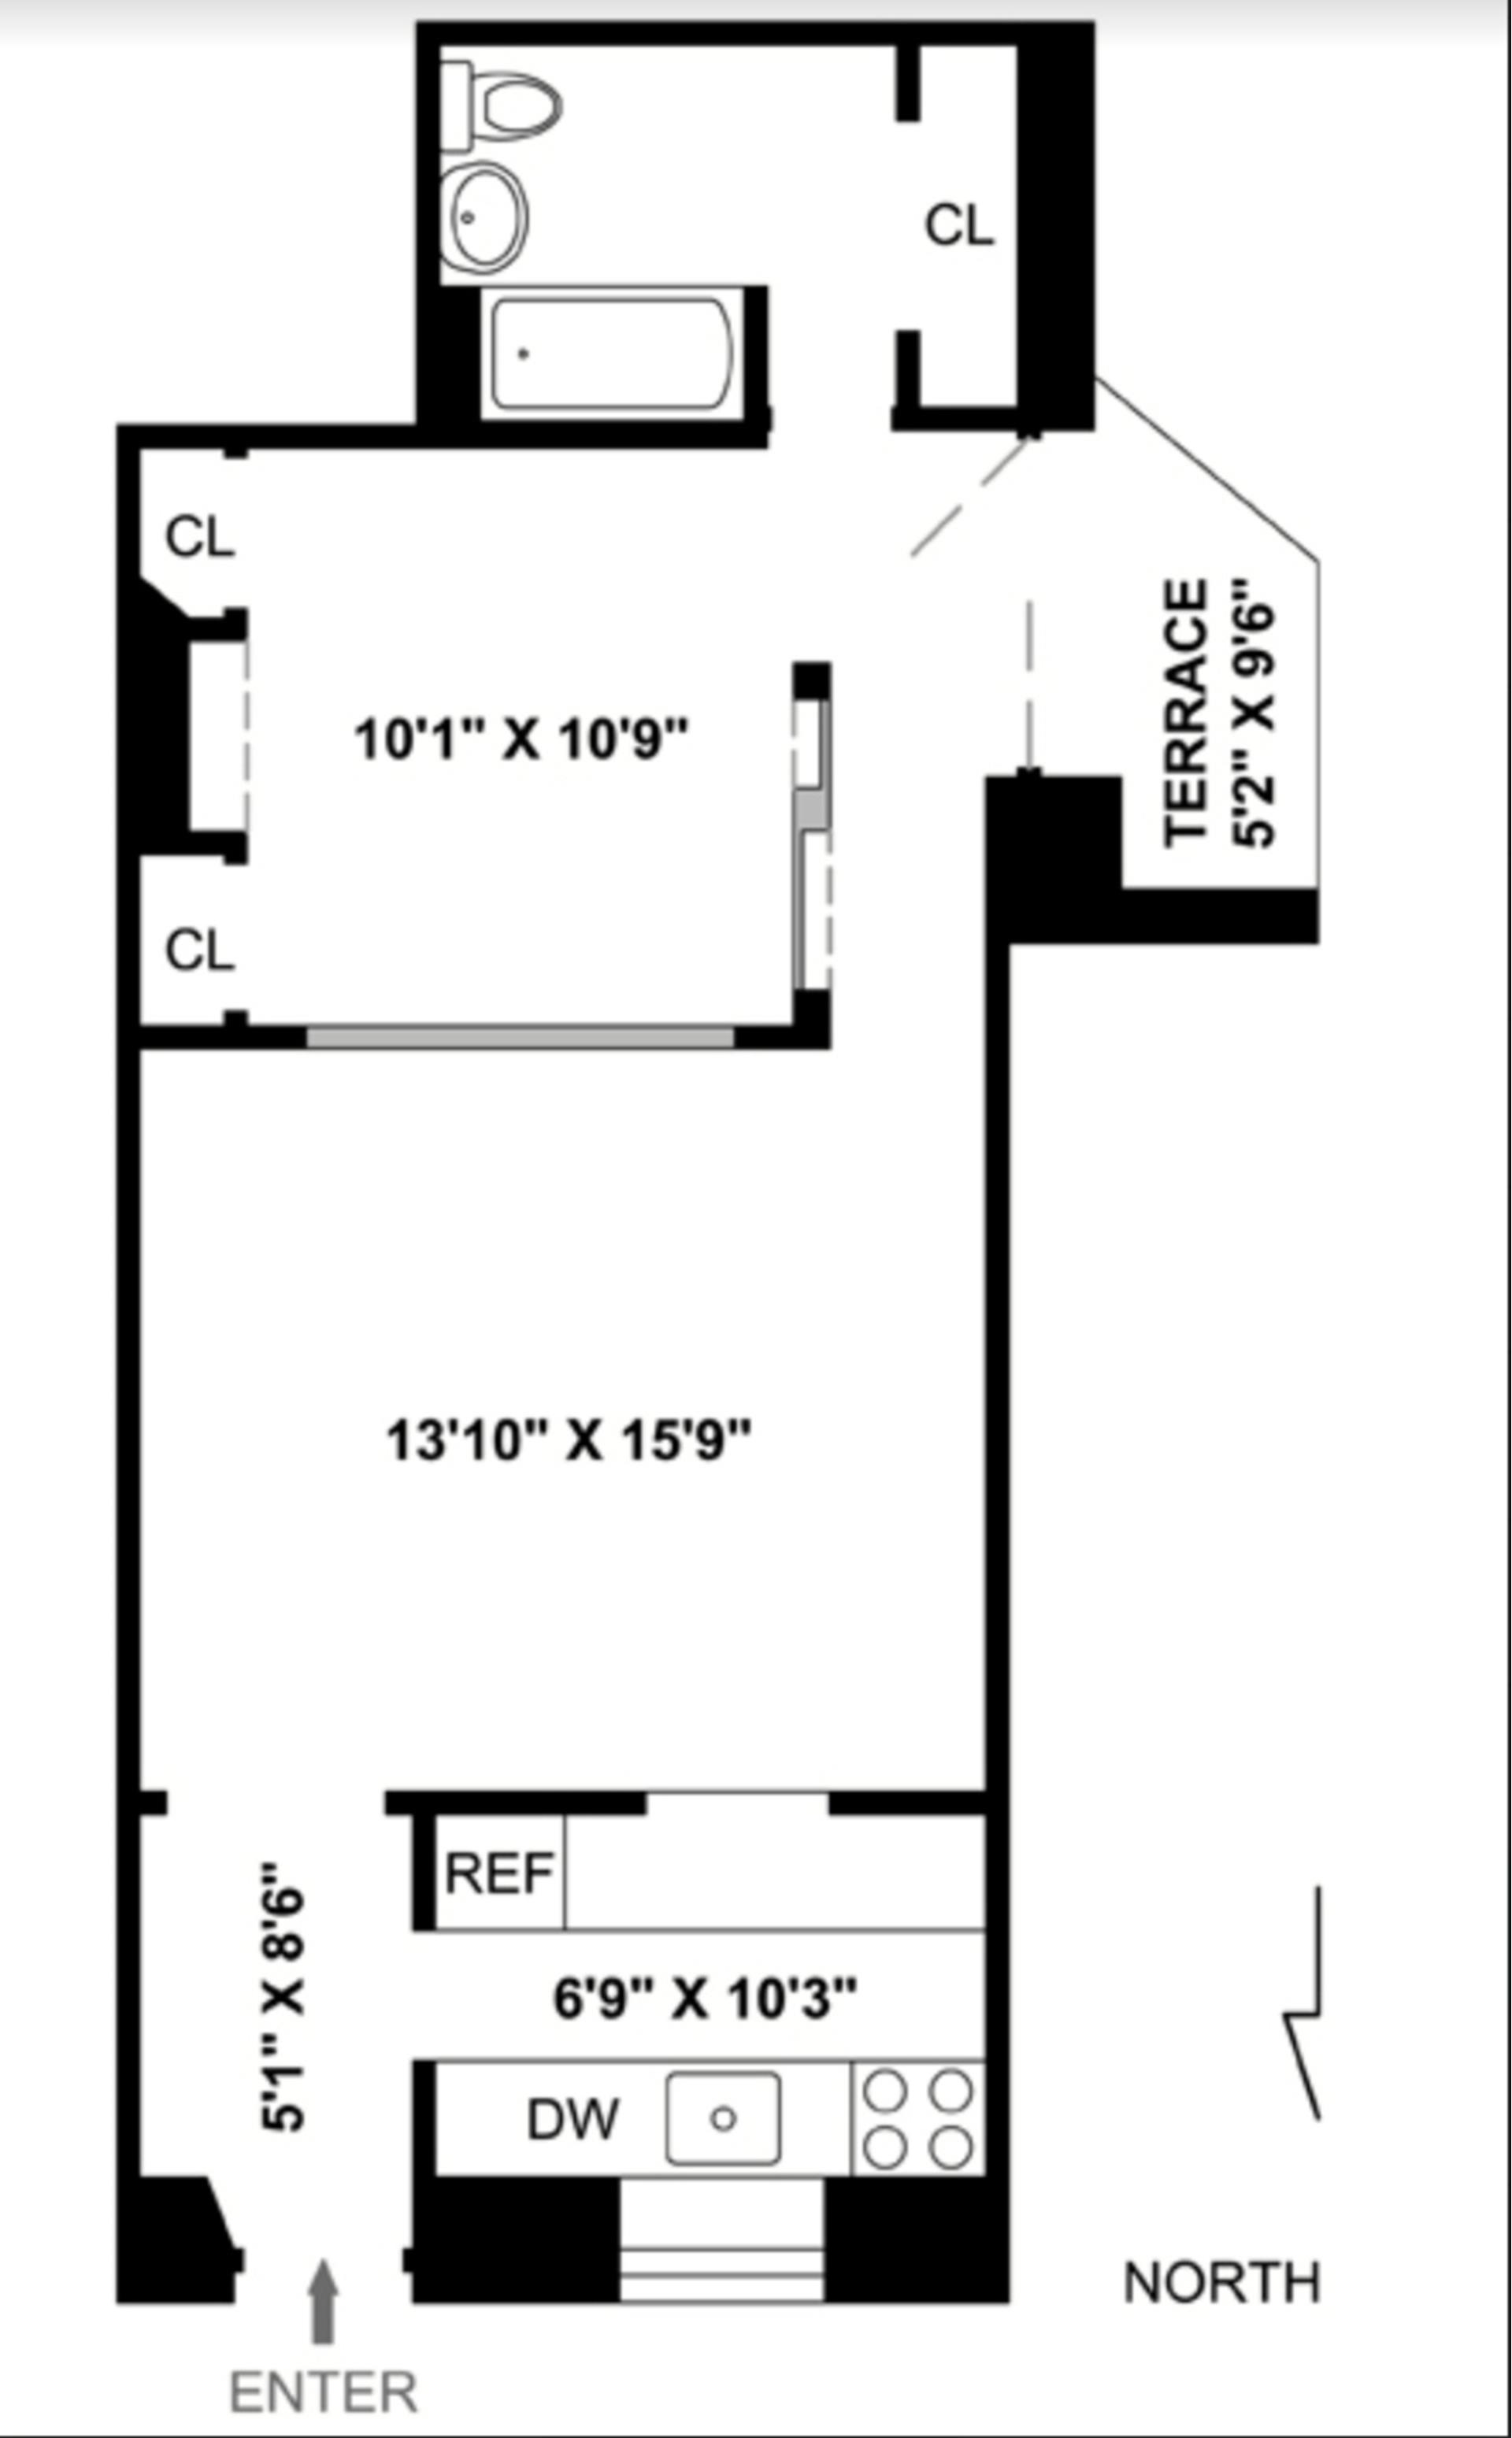 Floor plan of THE PIANO FACTORY, 454 West 46th Street, 1DN - Clinton, New York